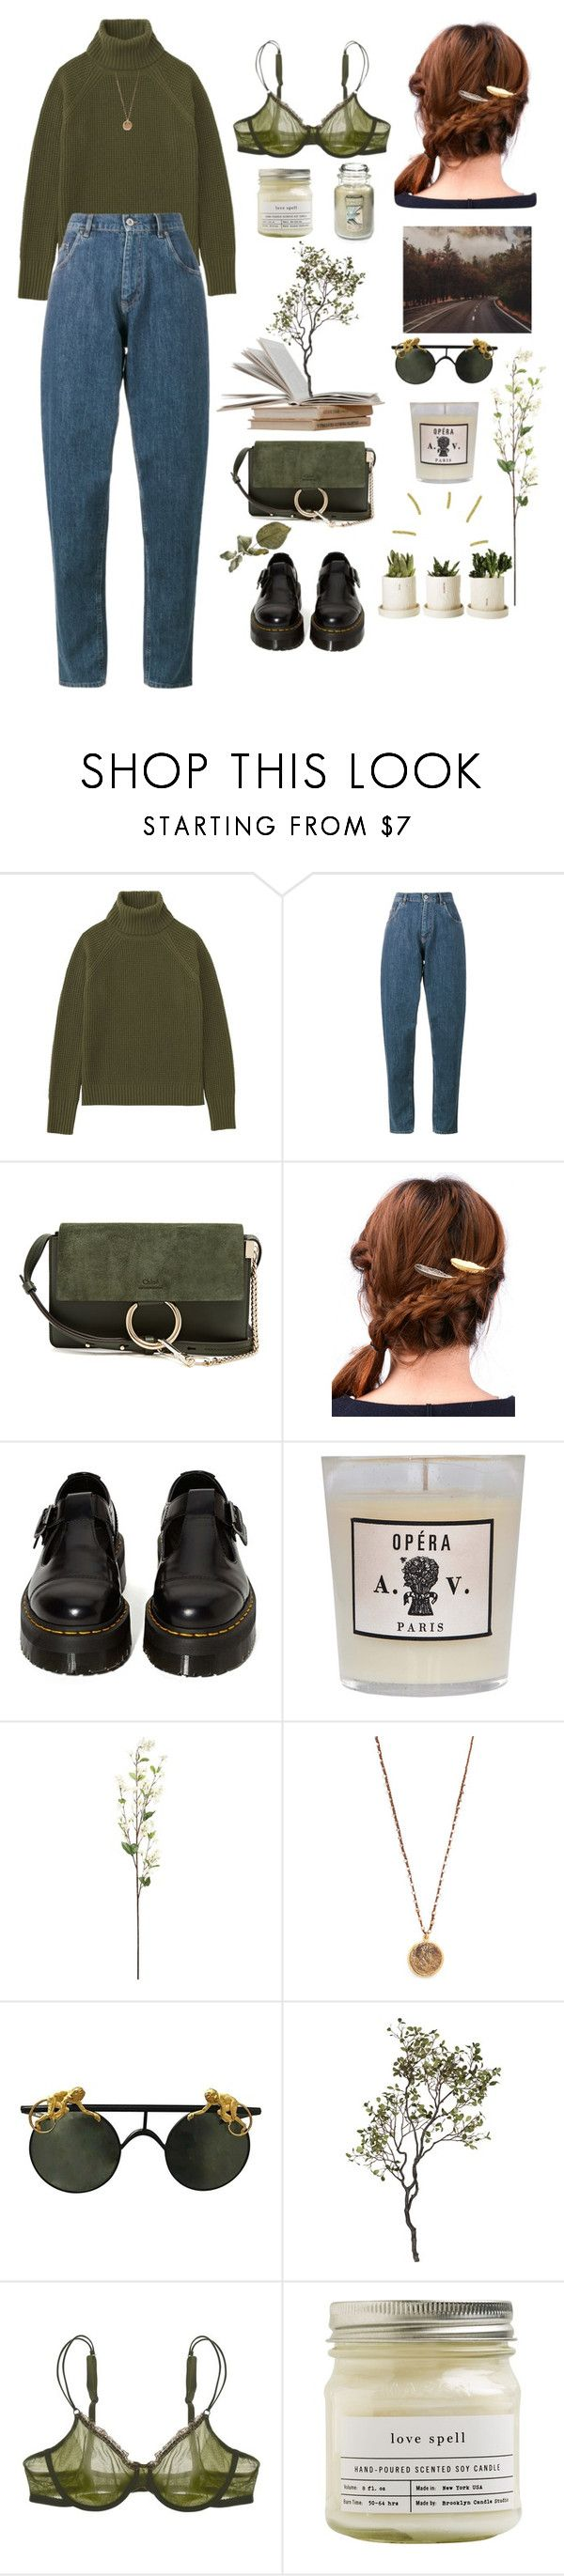 """59. Let's go home."" by analiencreature ❤ liked on Polyvore featuring Uniqlo, Miu Miu, Chloé, WithChic, Dr. Martens, Astier de Villatte, Native Gem, Crate and Barrel, Cosabella and Brooklyn Candle Studio"